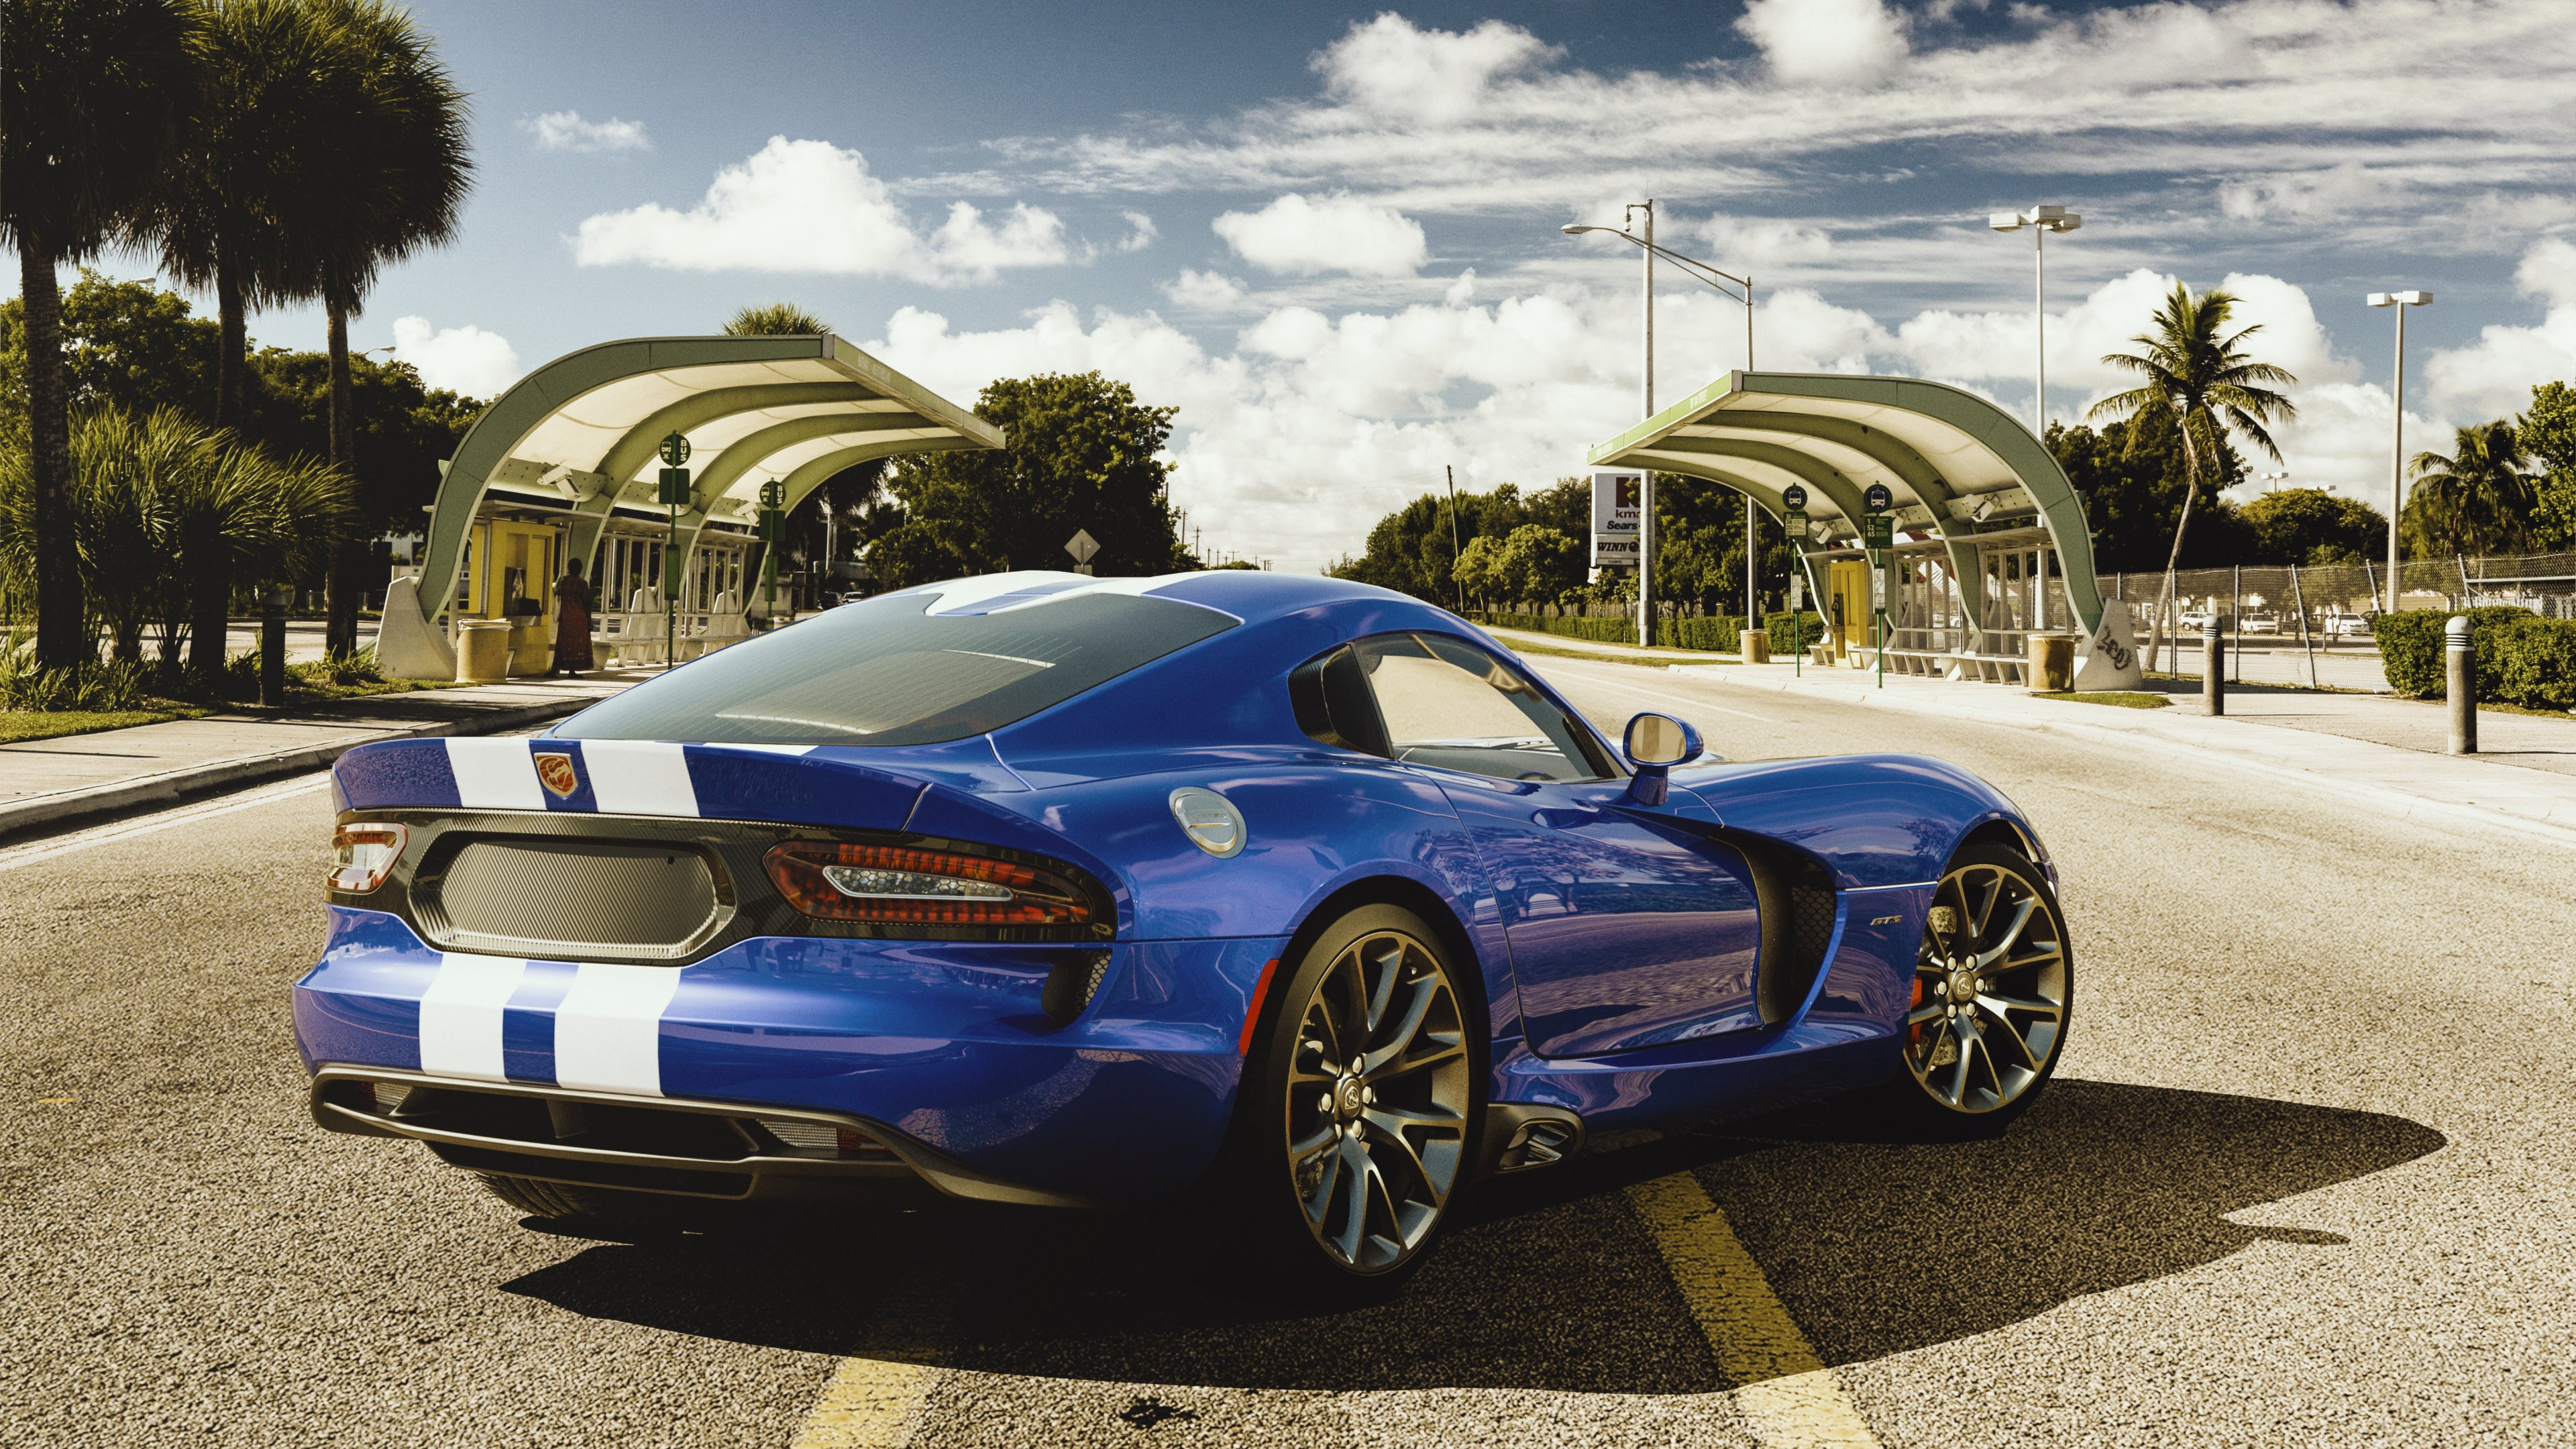 Dodge Viper 2017 Blue >> 4K Car Wallpapers for Desktop - WallpaperSafari